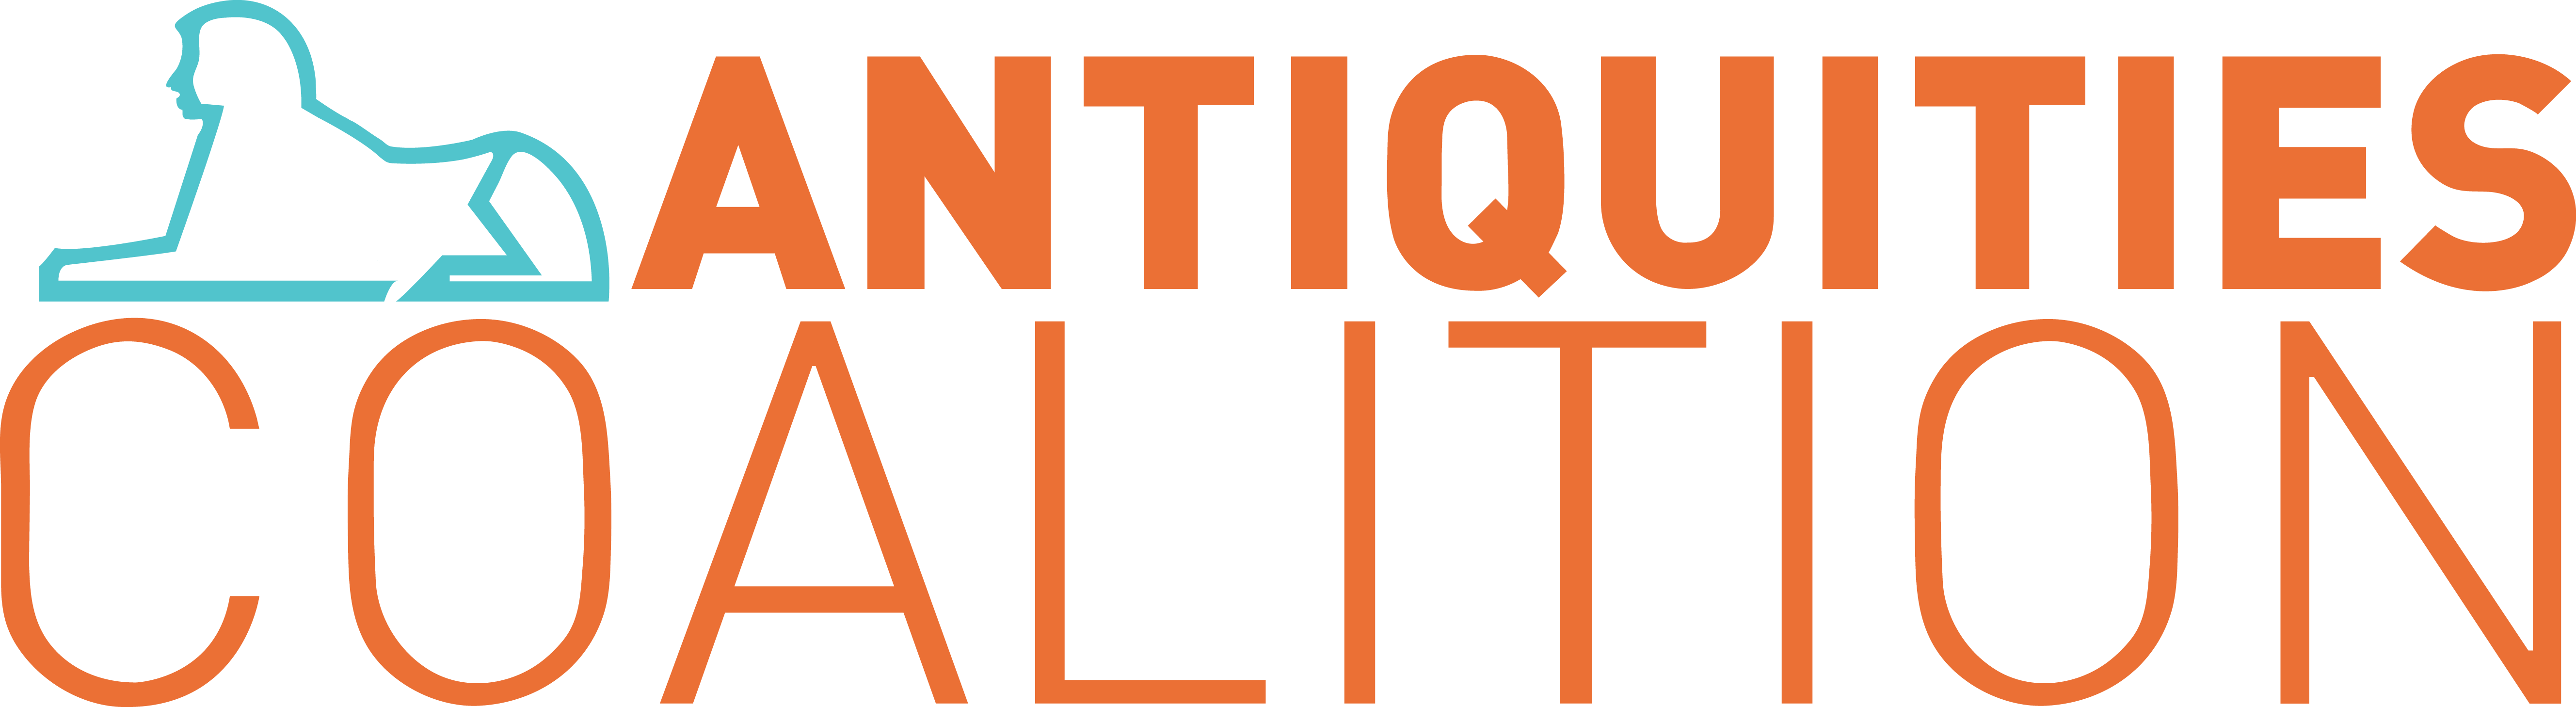 http://theantiquitiescoalition.org/wp-content/uploads/2015/09/AC-long-Logo.png